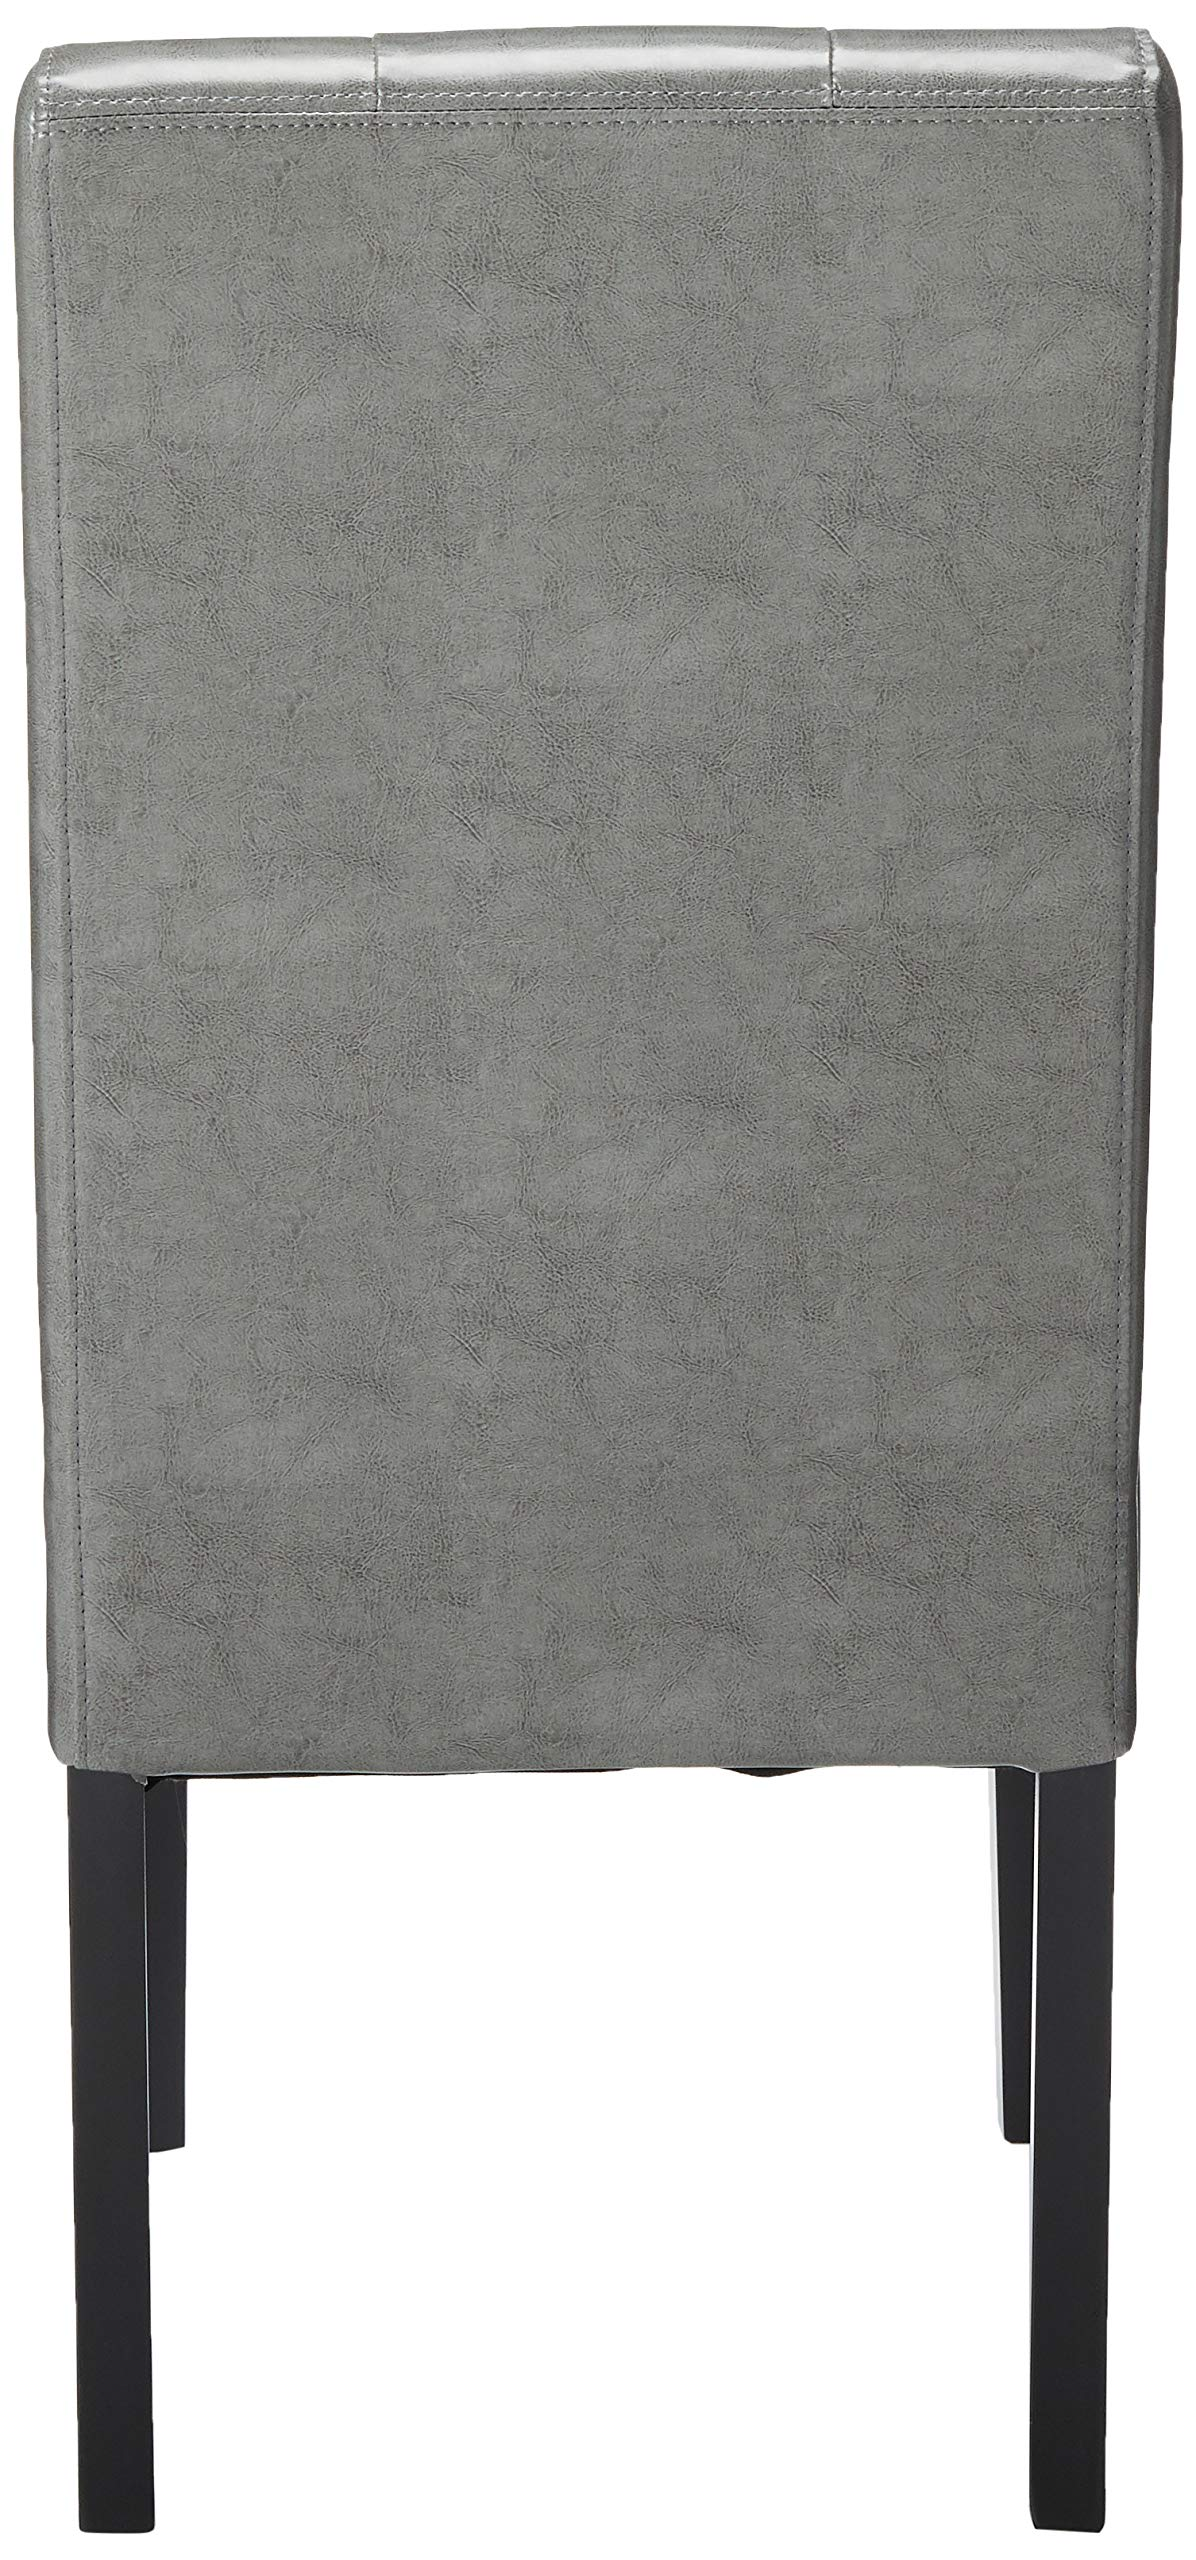 Christopher Knight Home 214519 Alexander Grey Leather Dining Chairs (Set of 2), by Christopher Knight Home (Image #3)